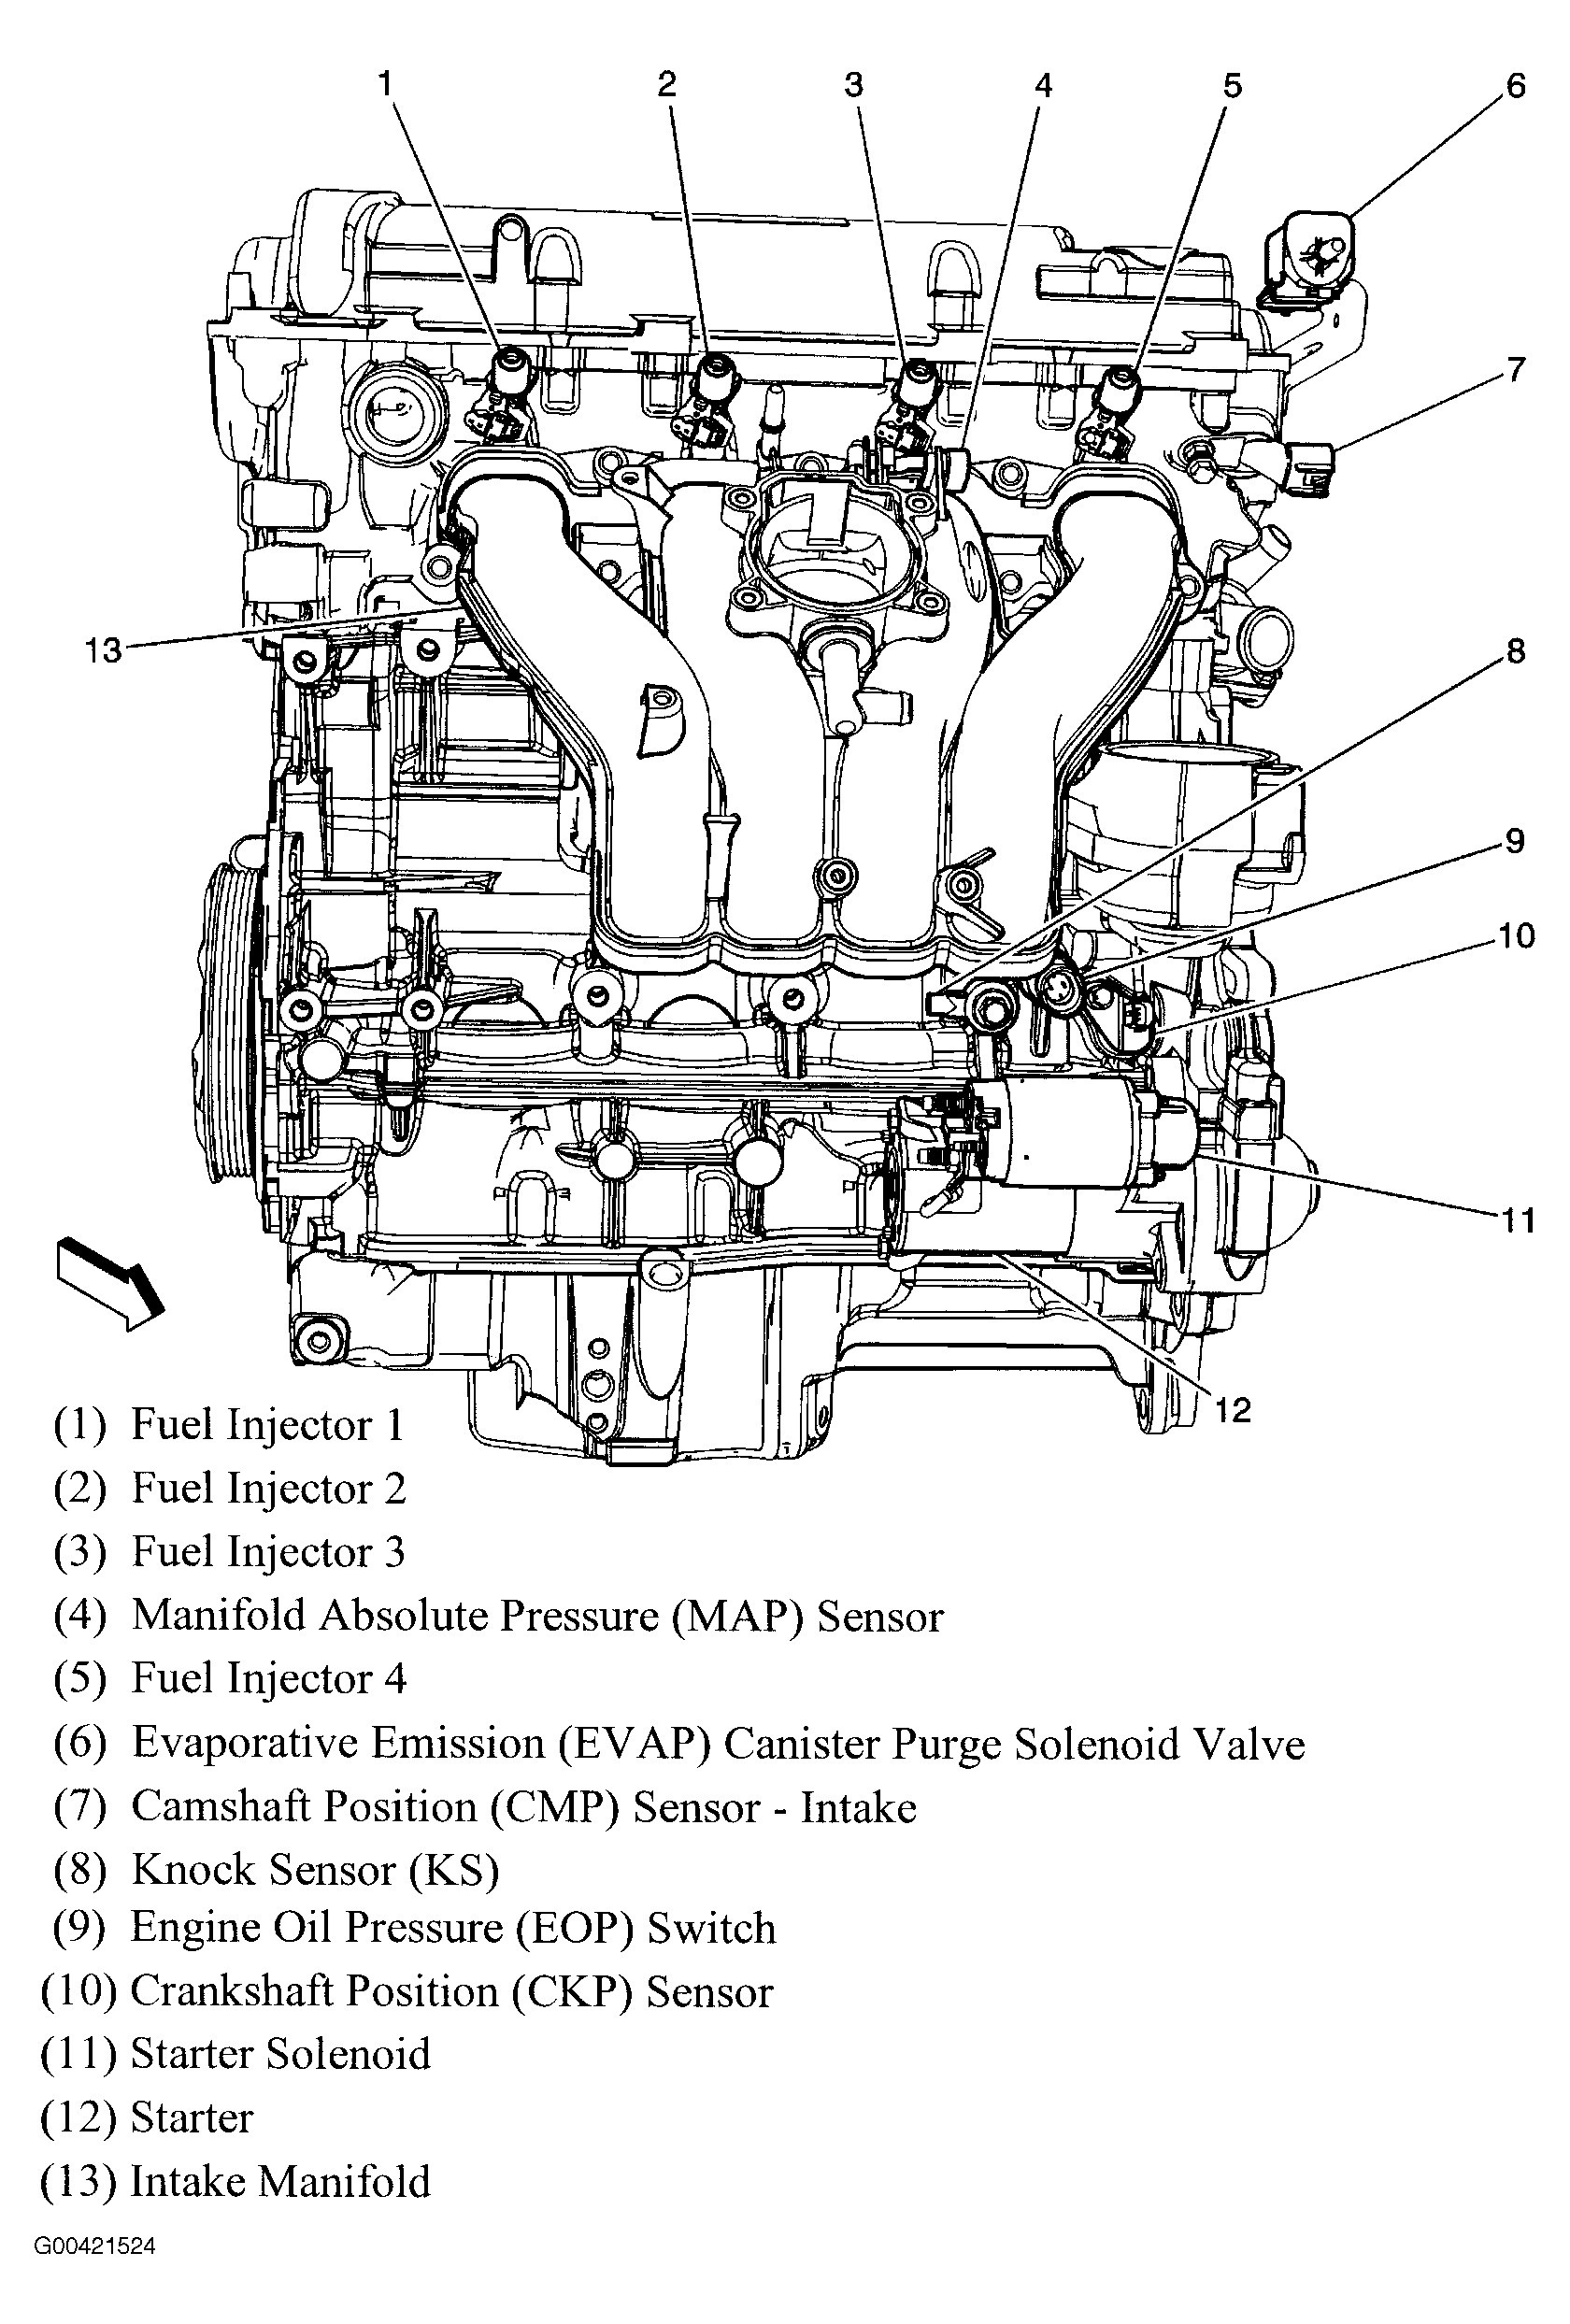 hight resolution of chevy cruze further 1997 chevy cavalier engine diagram on chevrolet 1997 chevy cavalier engine diagram